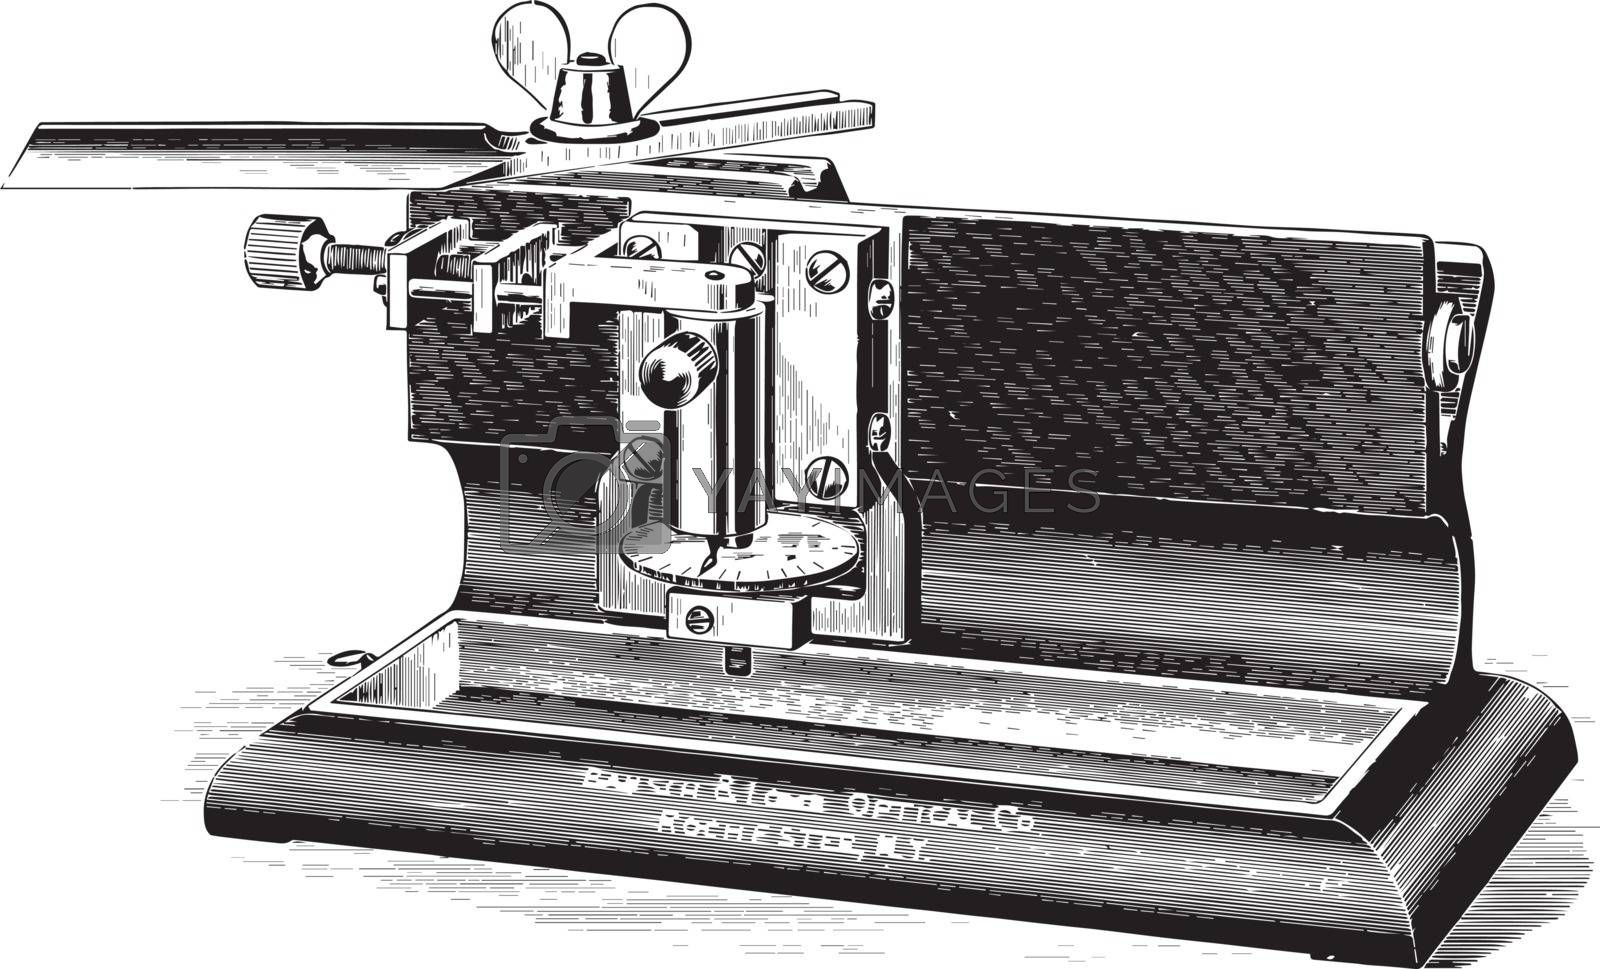 Sliding Microtome, vintage illustration. by Morphart